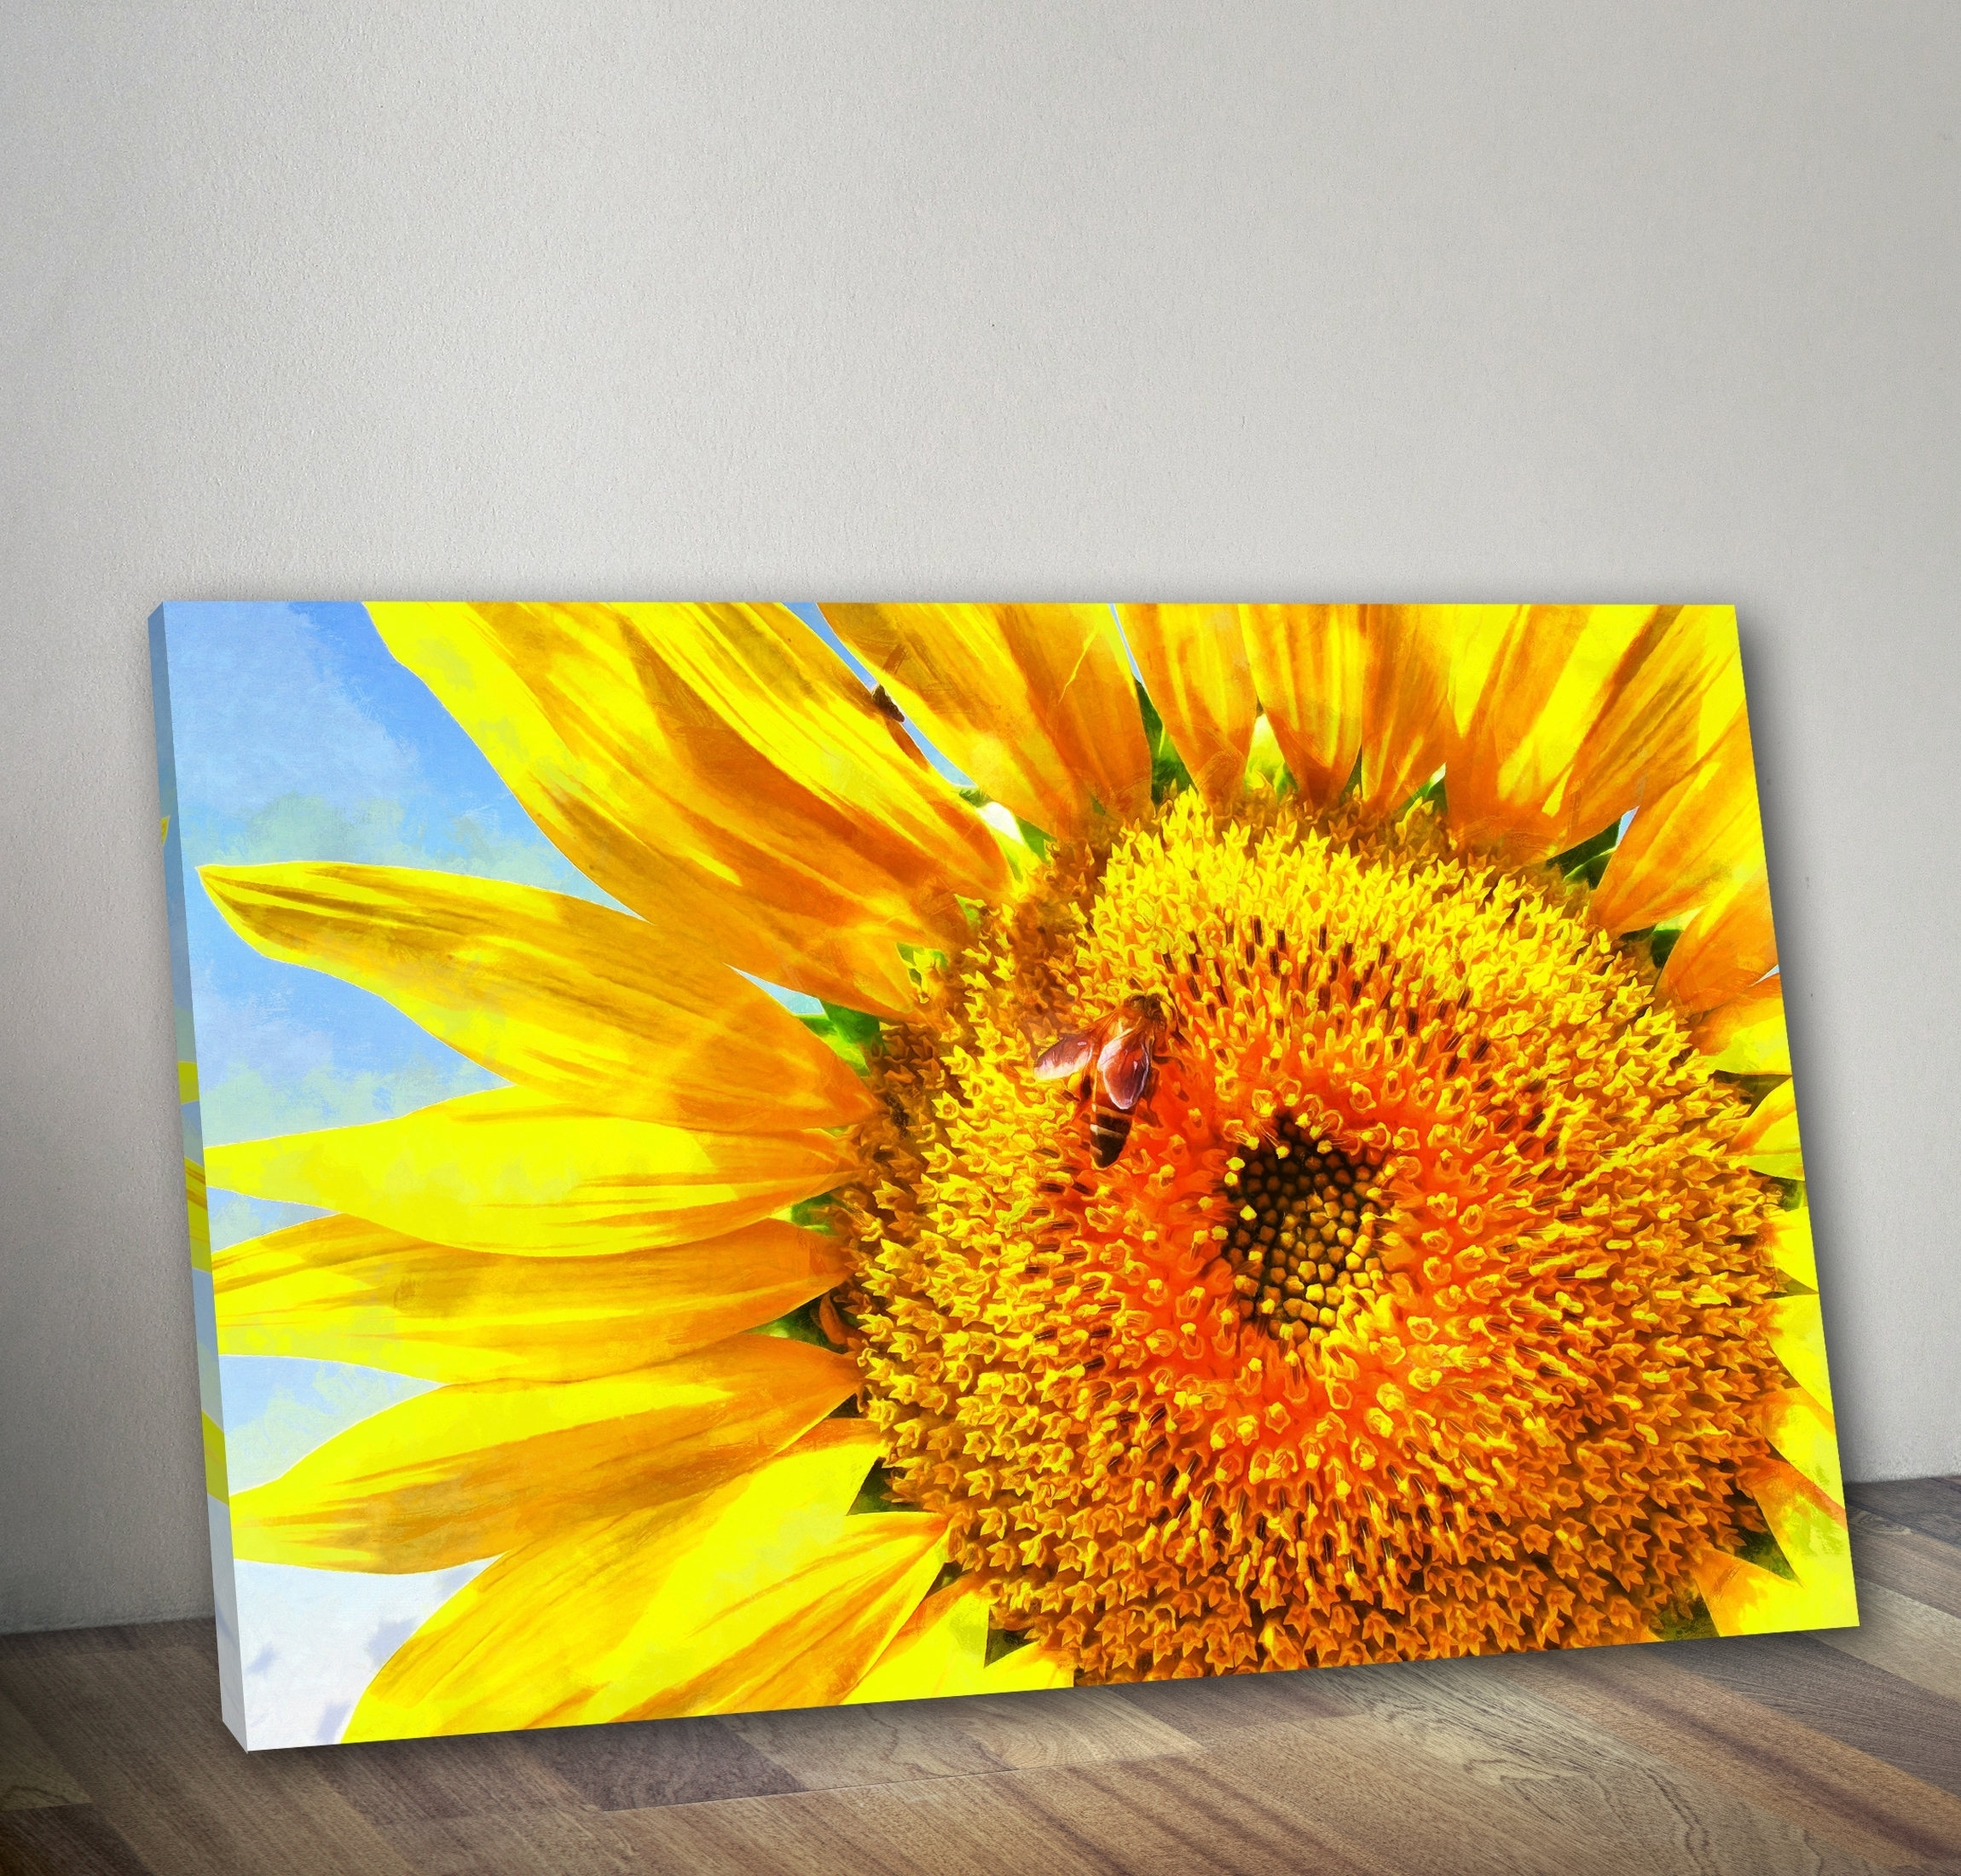 Unique Sunflower Wall Painting | Wall Decorations With Regard To Current Sunflower Wall Art (View 18 of 20)